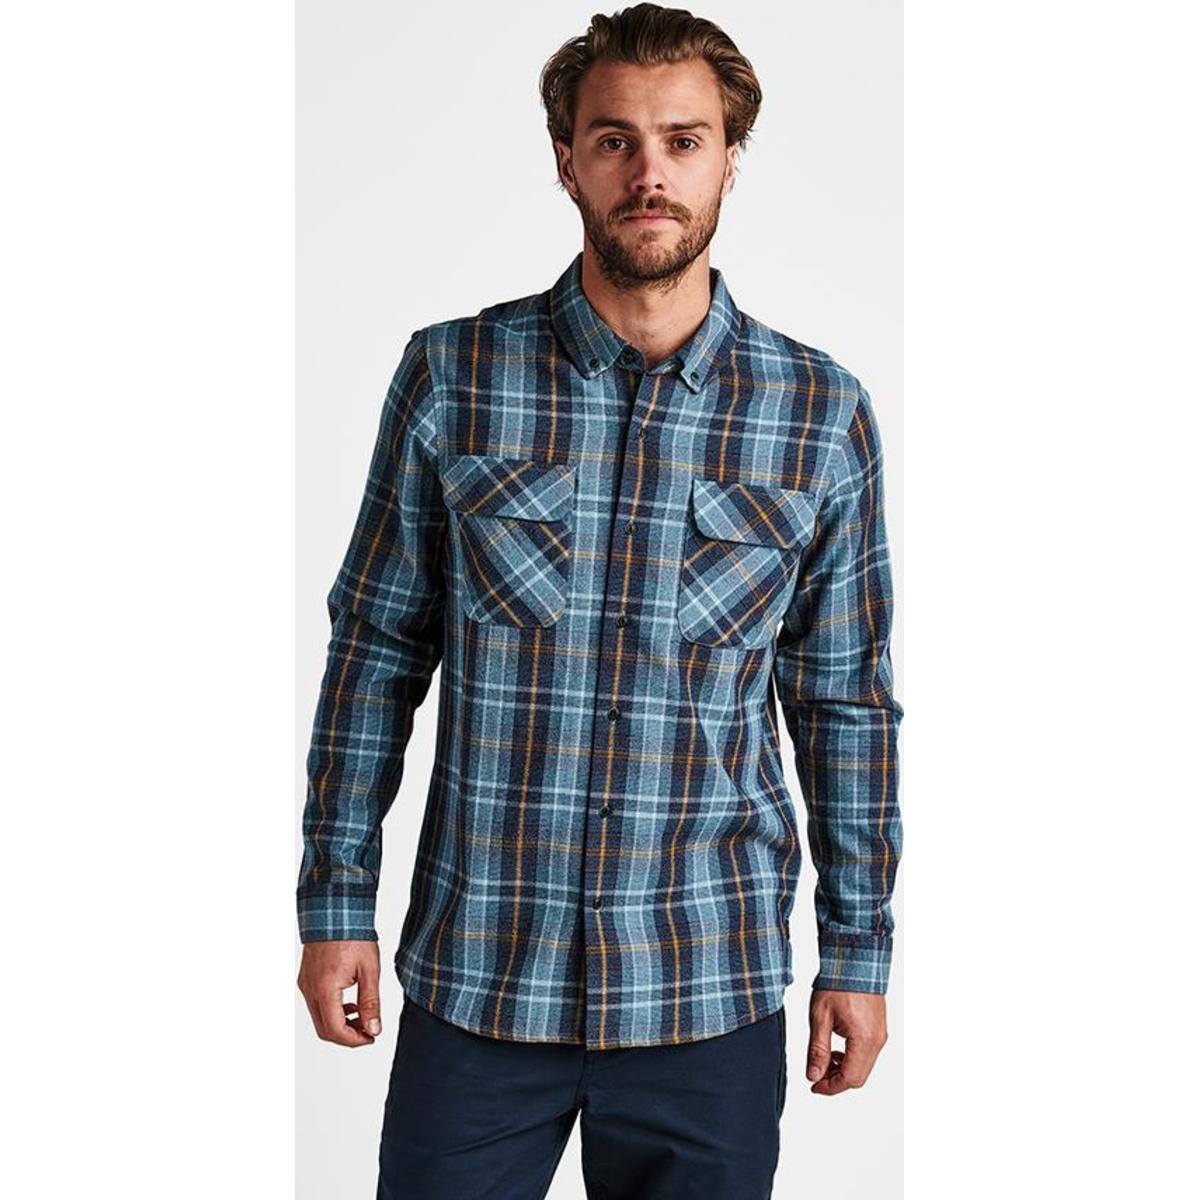 Roark Revival Pinnacles Button Up Shirt